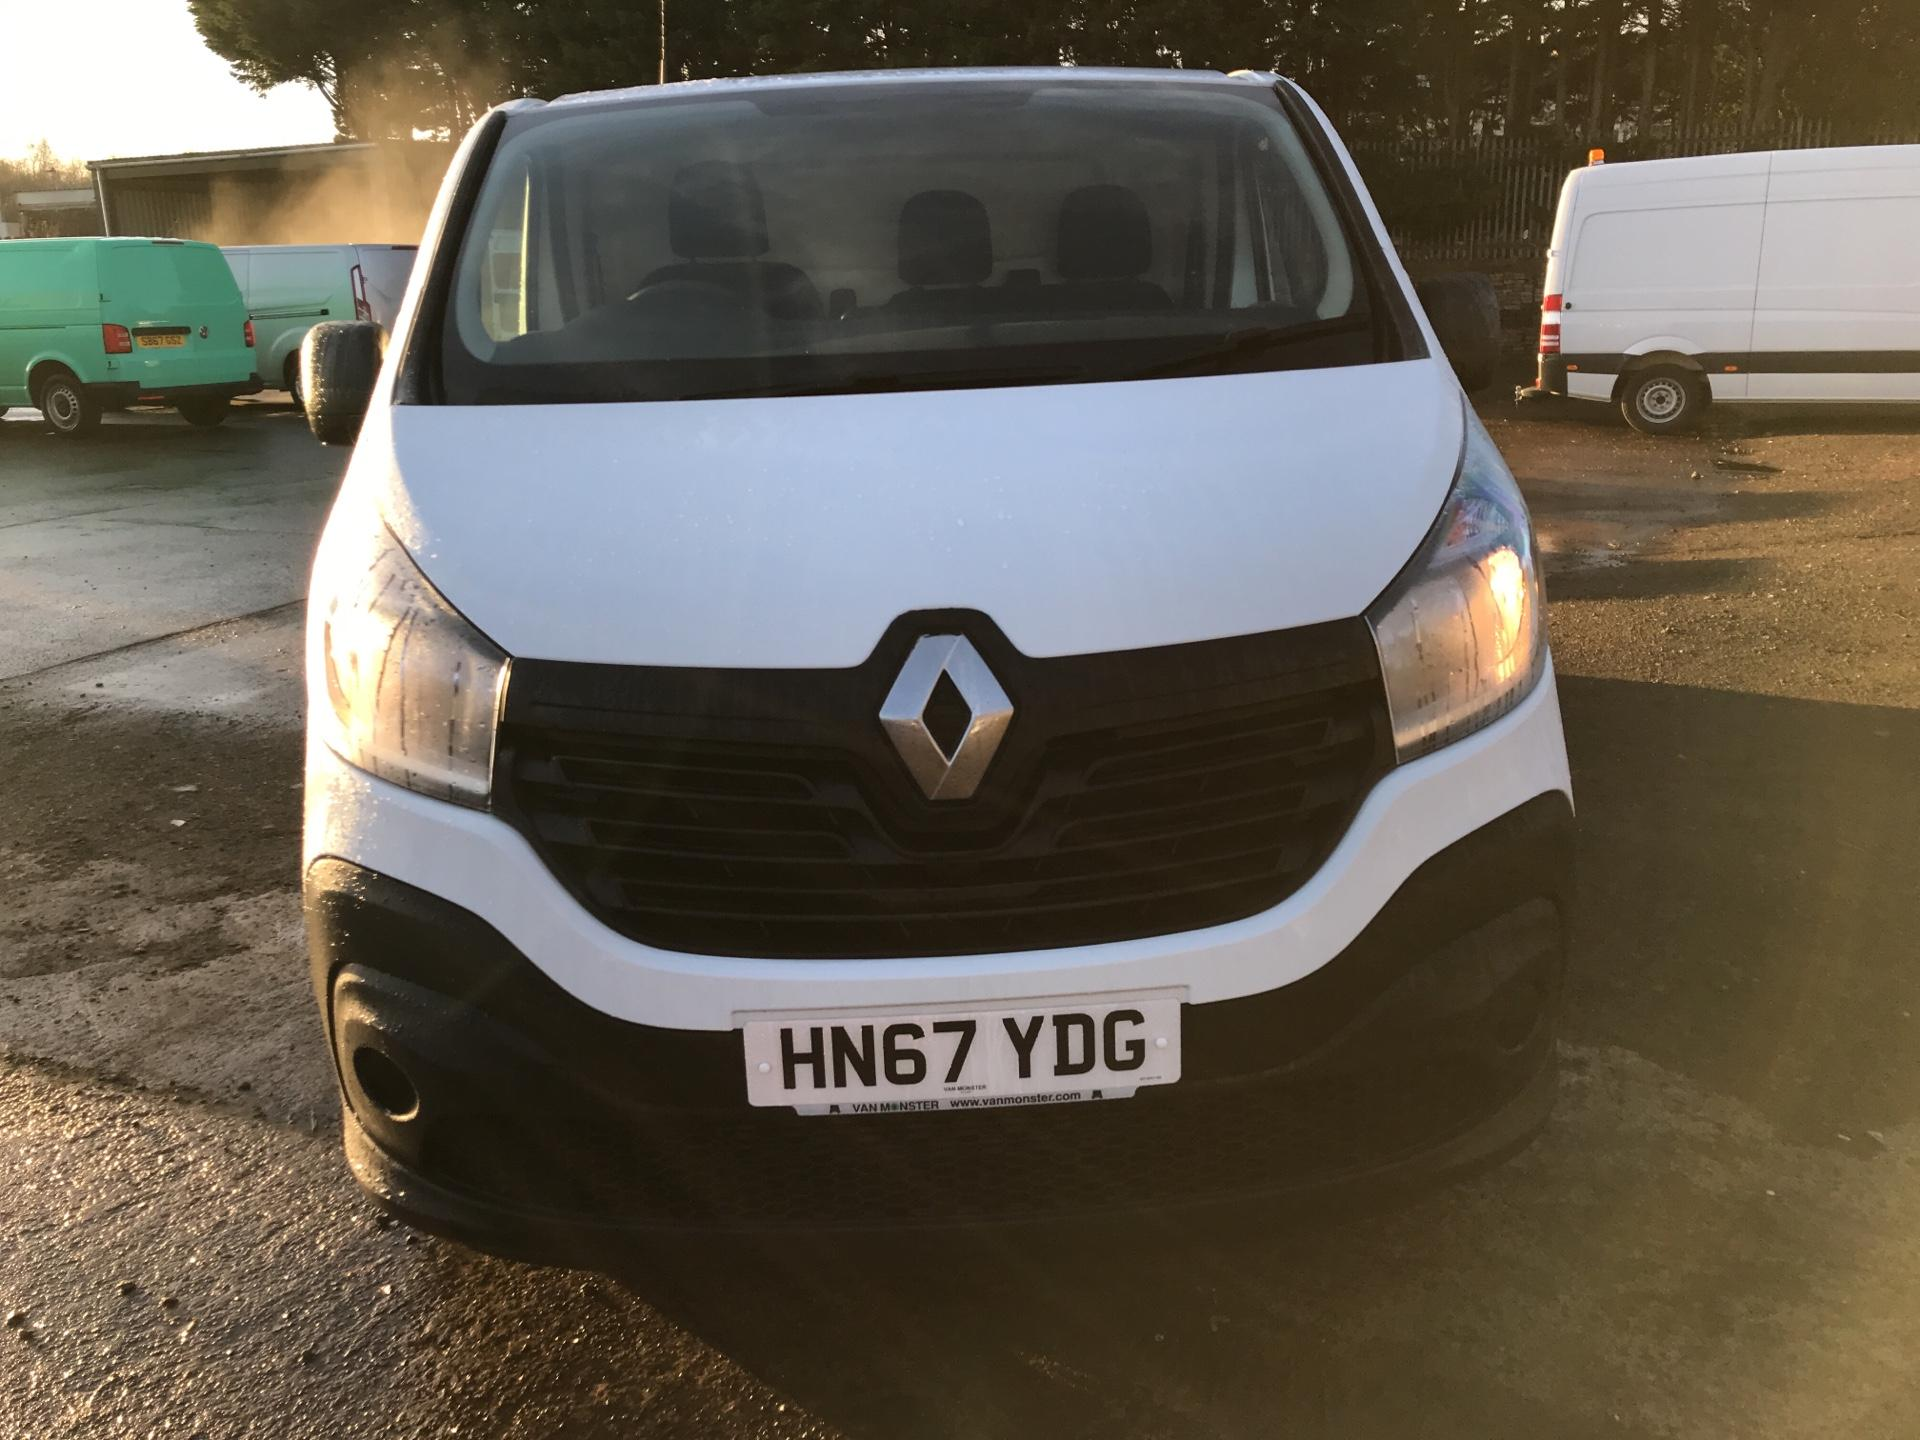 2017 Renault Trafic SL27 ENERGY DCI 125PS BUSINESS VAN EURO 6 (HN67YDG) Thumbnail 8